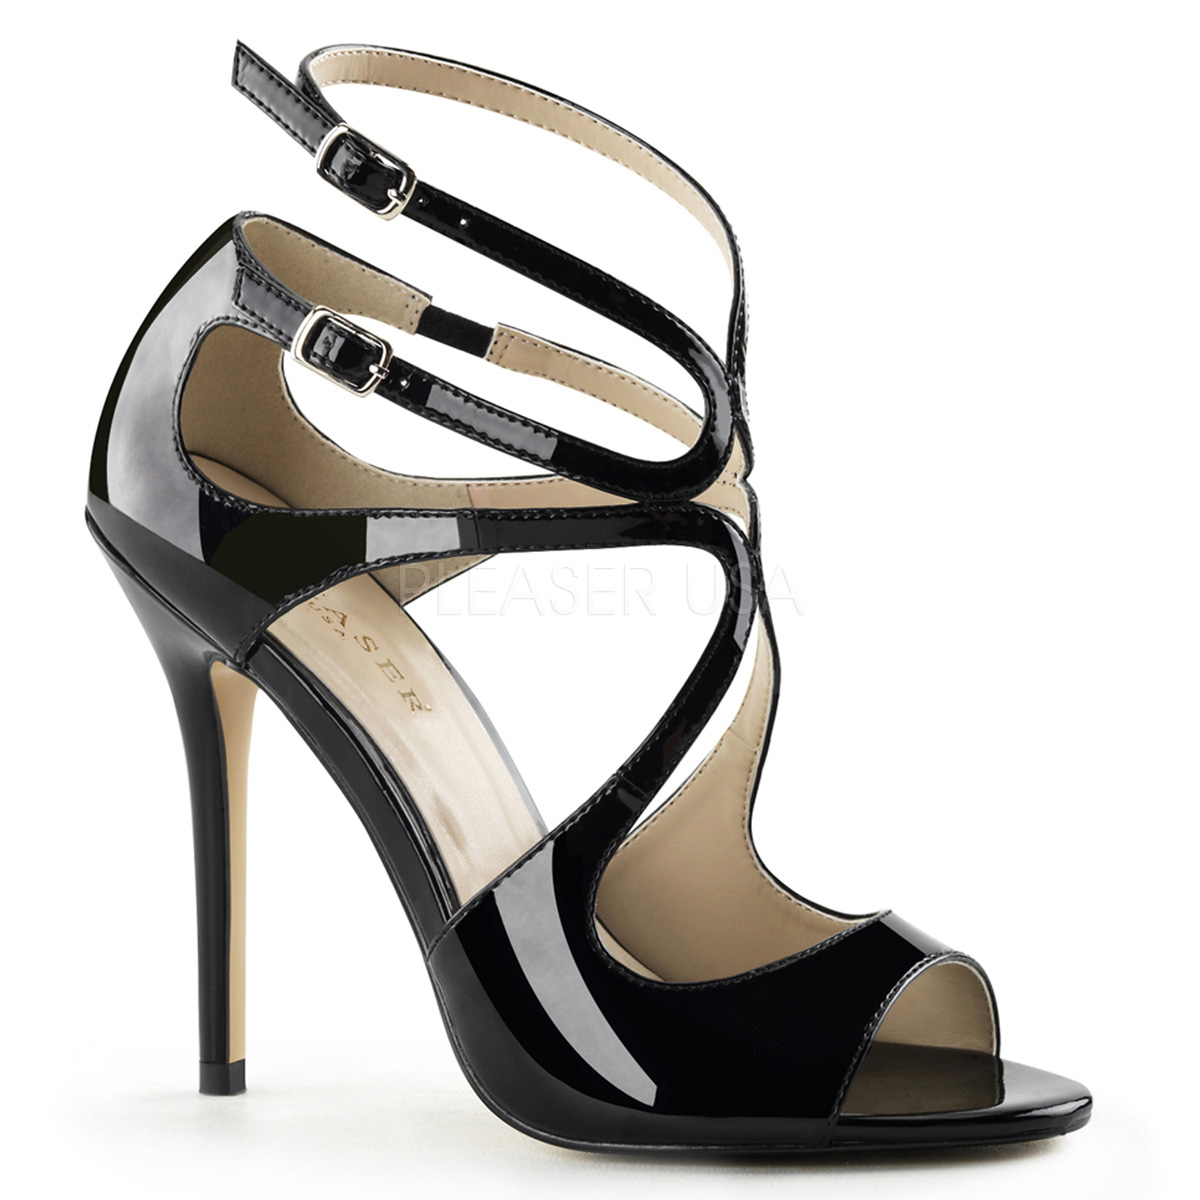 5 Inch Stiletto Heel Strappy Sandal